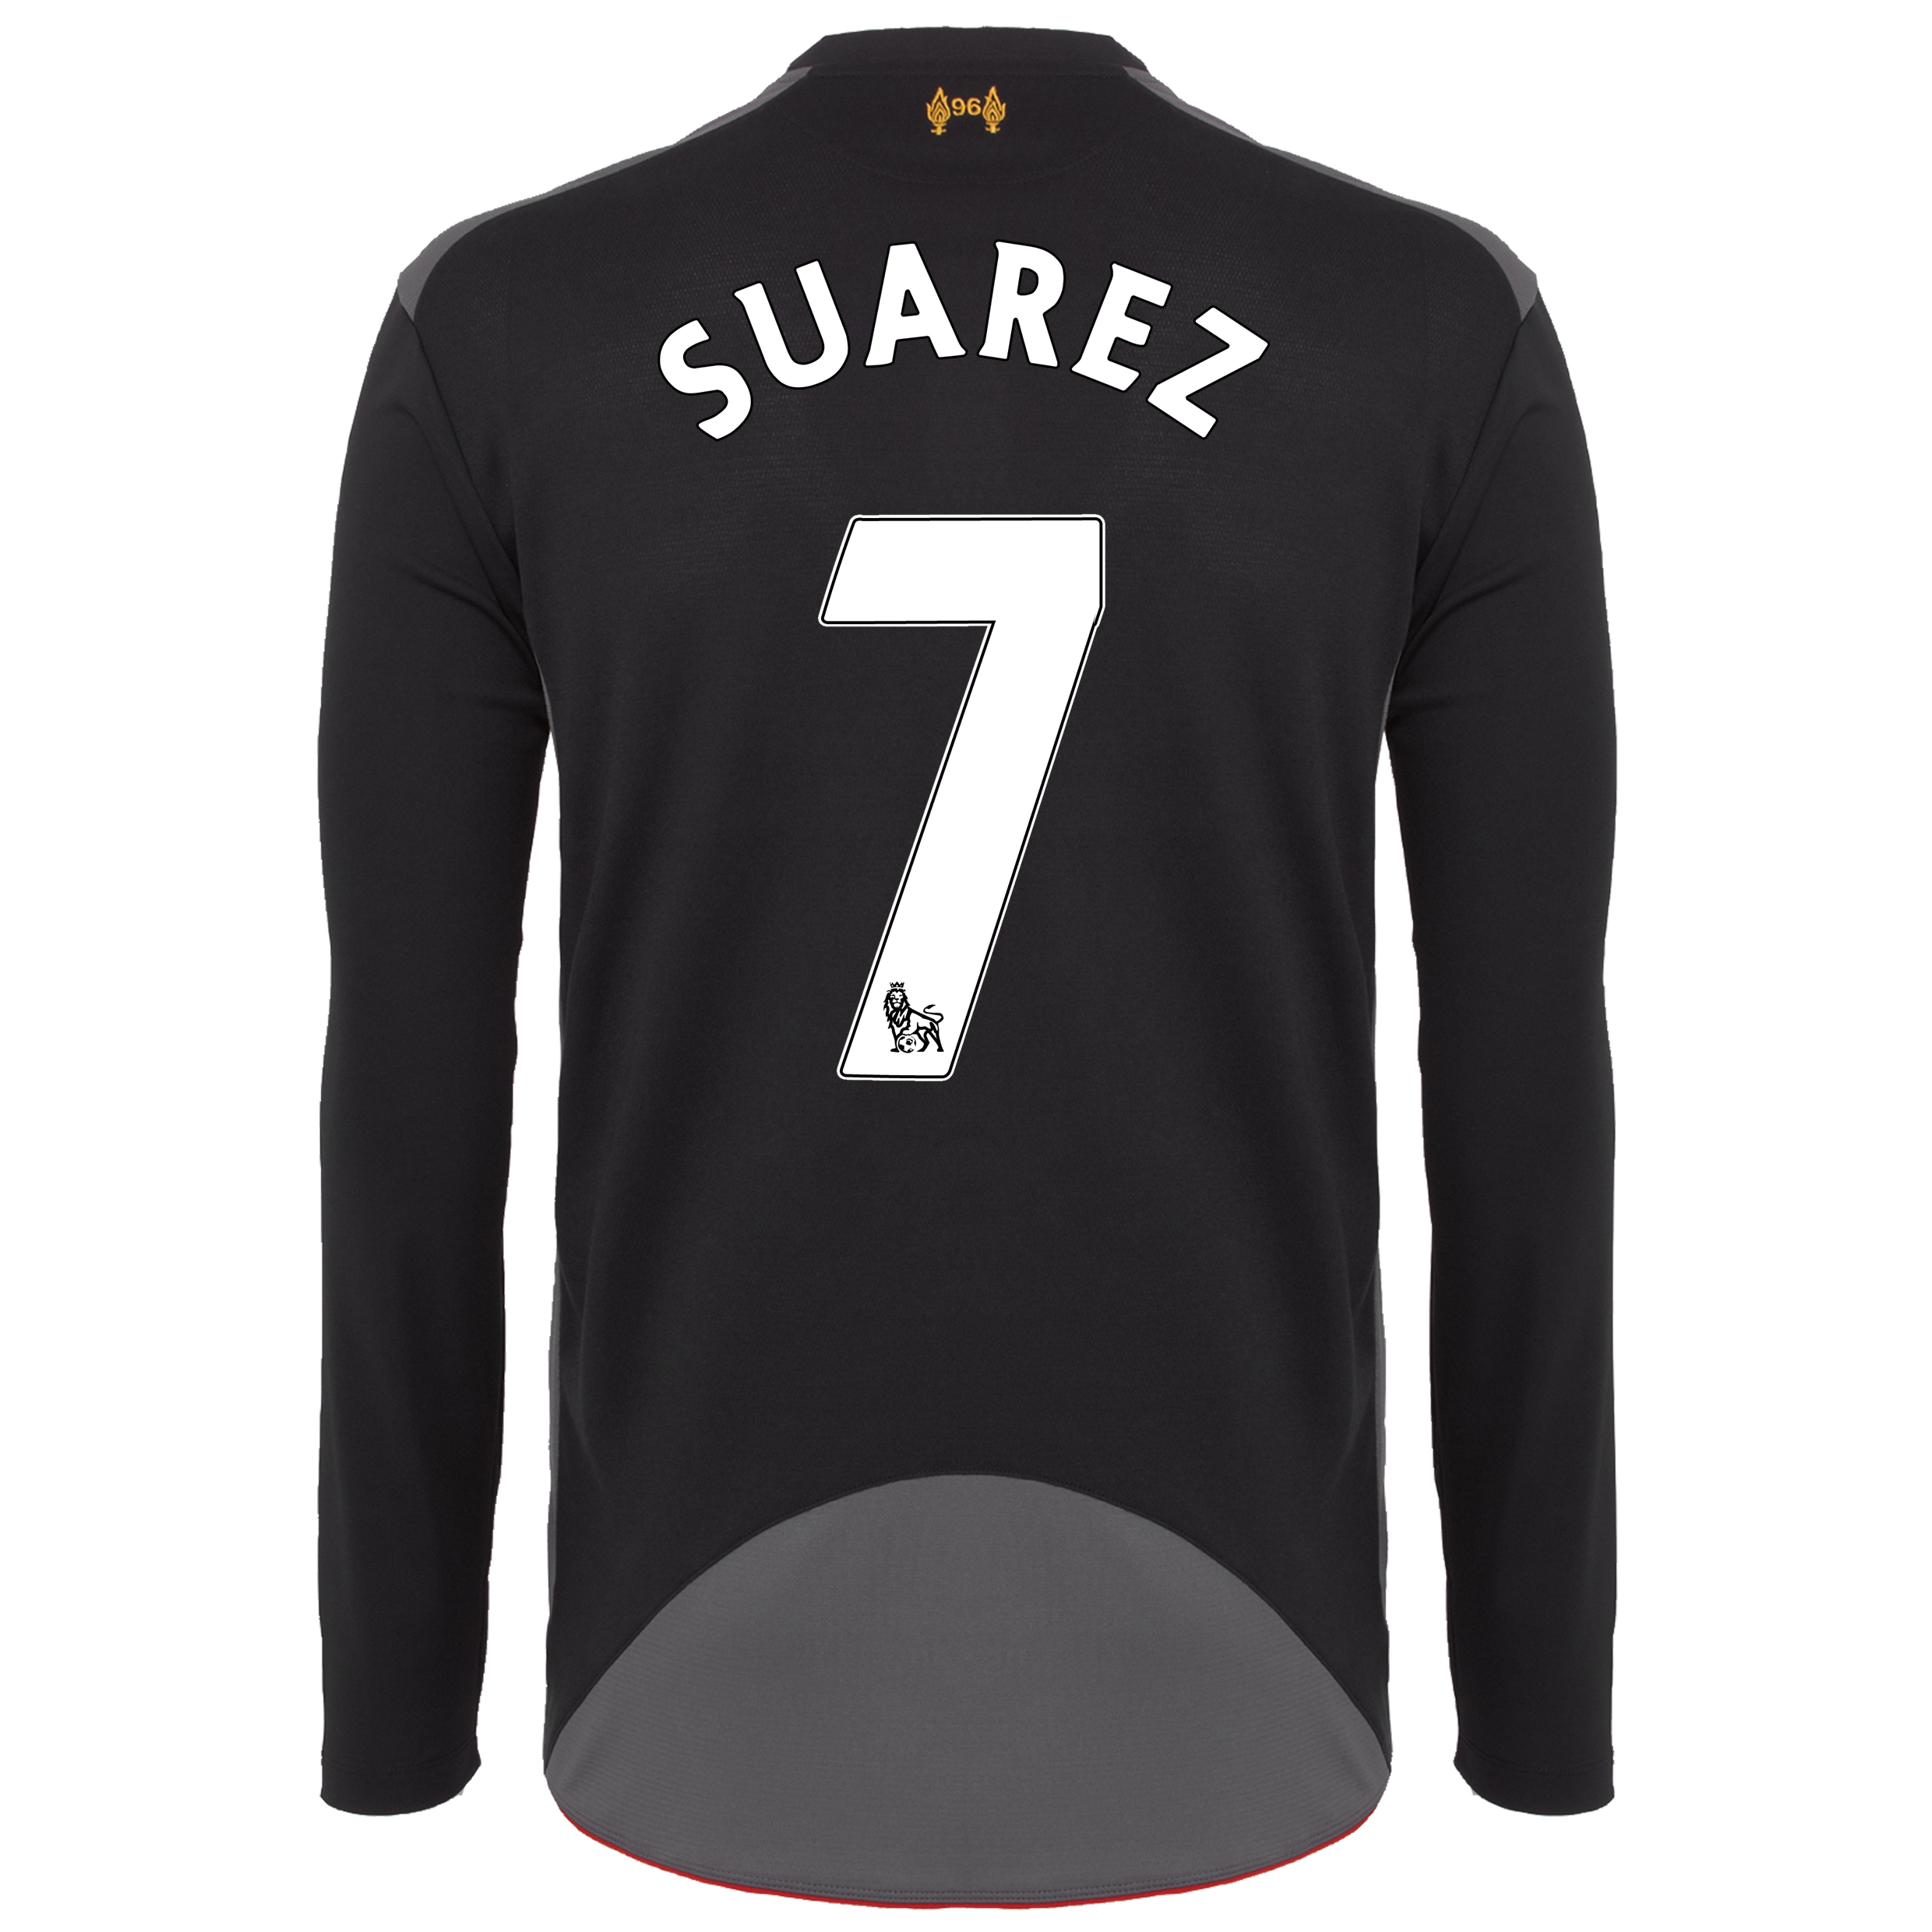 Liverpool Away Shirt 2012/13 - Long Sleeve - Youths with Suarez 7 printing